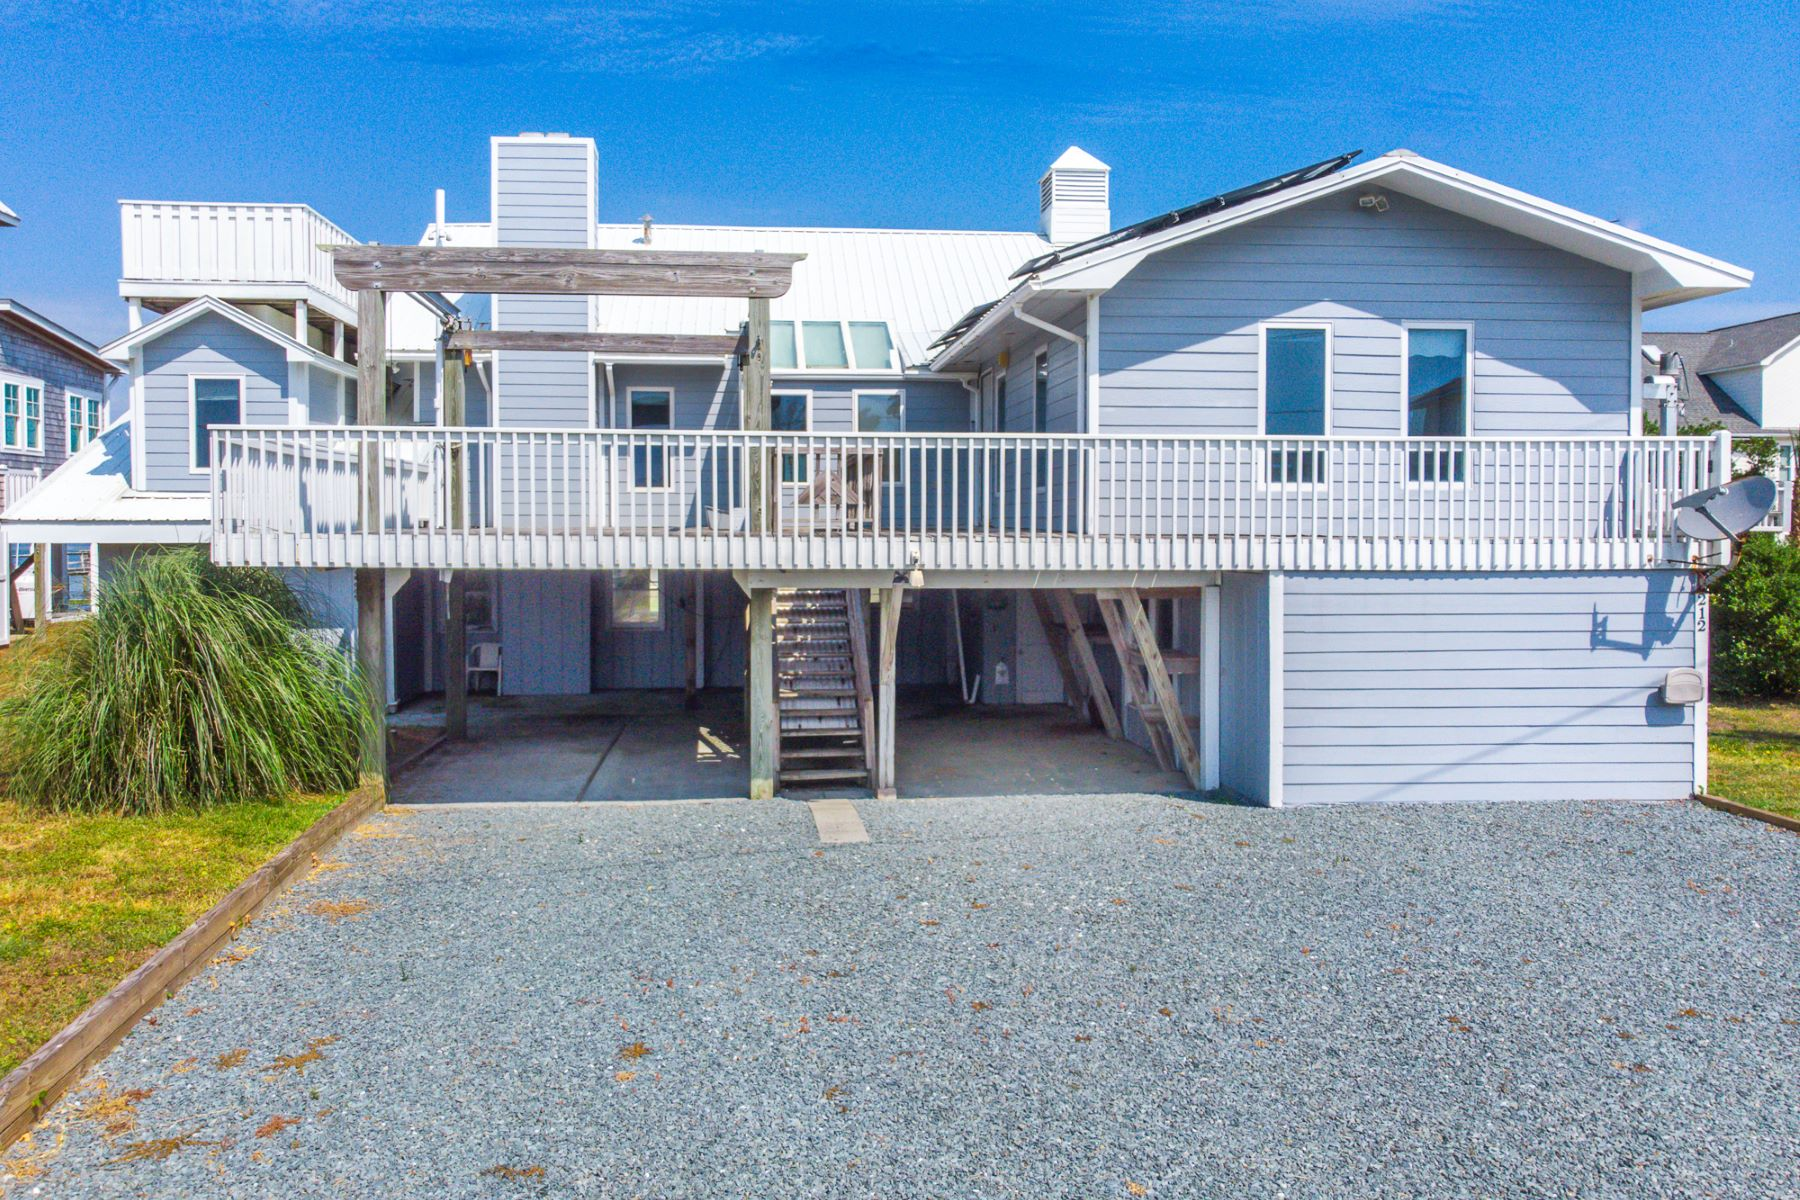 Single Family Homes for Active at Sound Front Unique Beach Home 212 Bridgers Avenue Topsail Beach, North Carolina 28445 United States